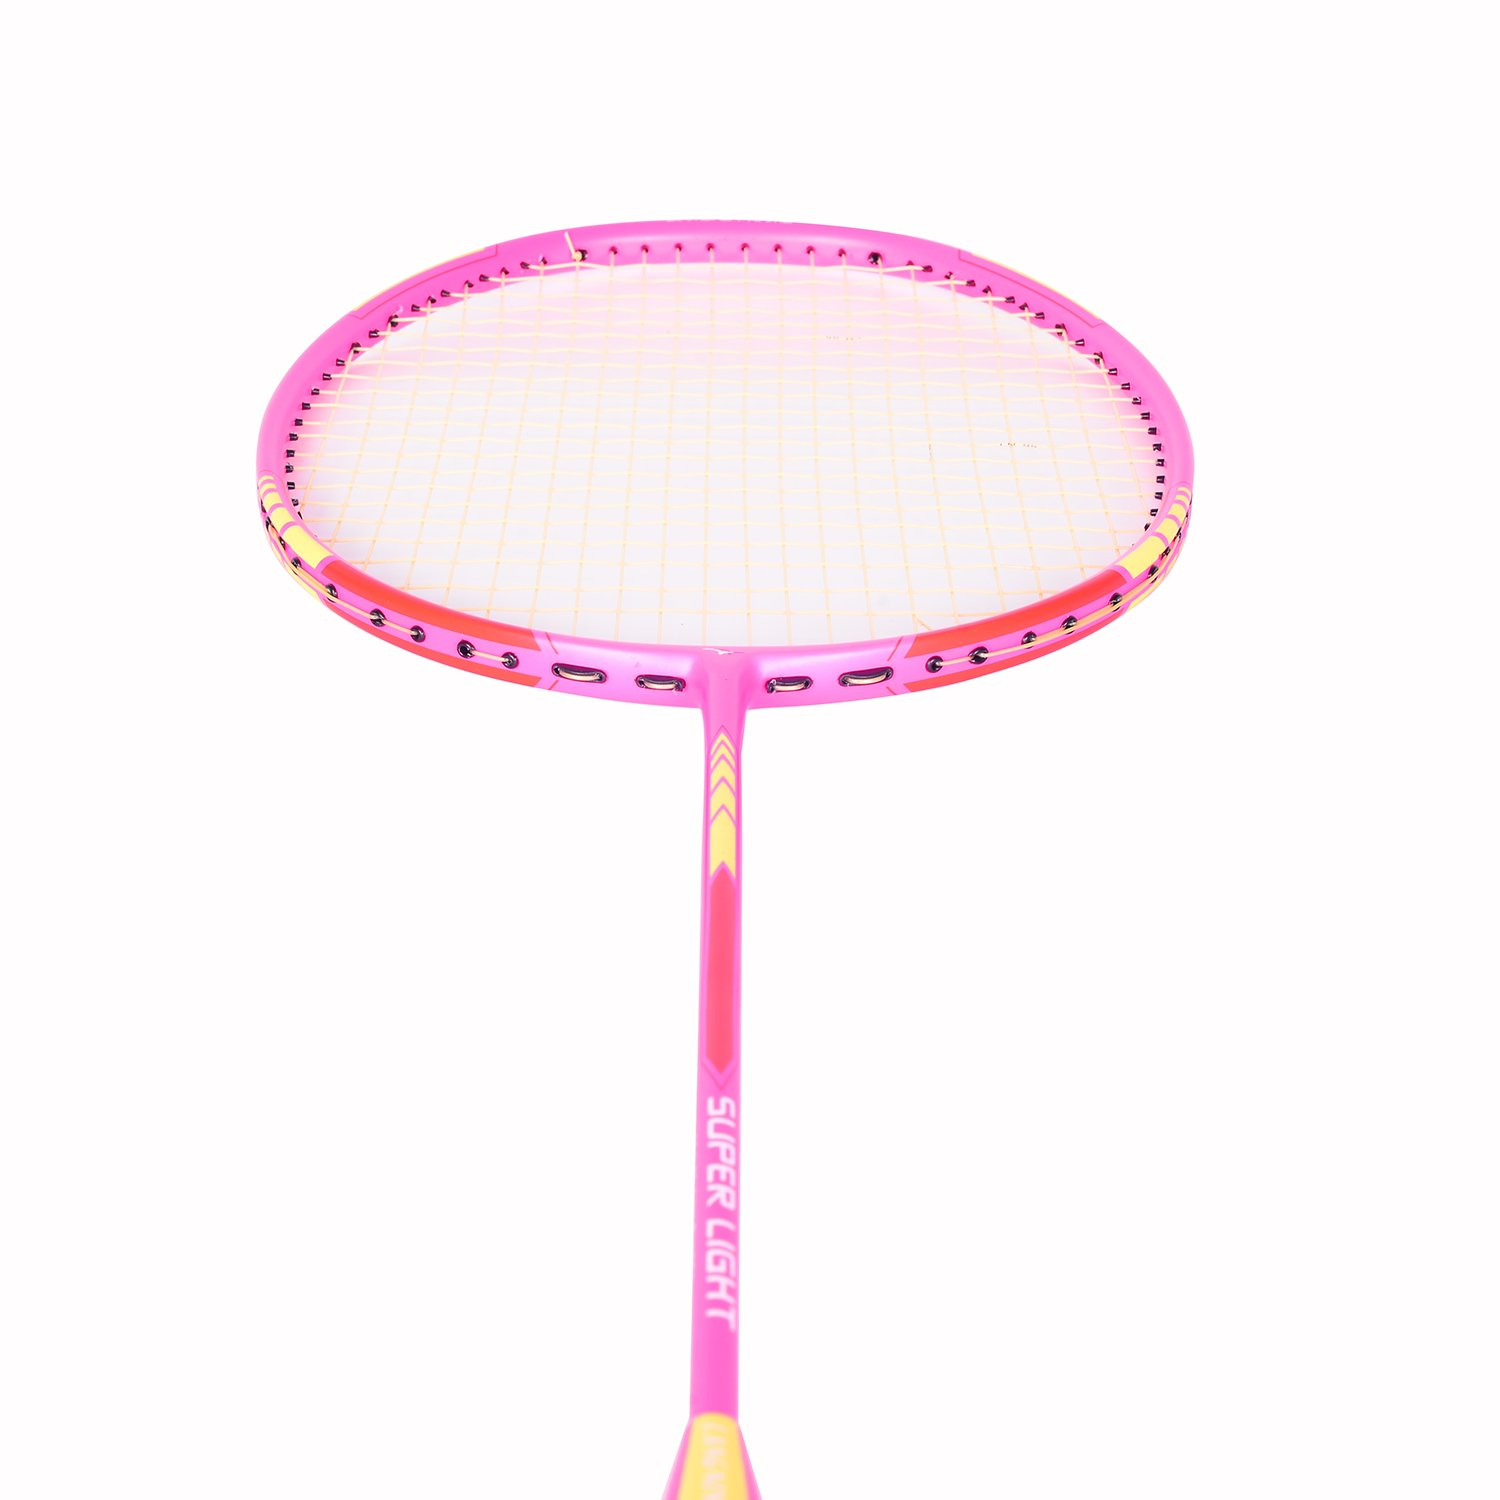 ab2cd32dc Amazon.com   Badminton Racket Light Racquet Set from Langning Carbon Fiber  6U(72g) Professional Tournament Single Shuttle Bat Carrying Bag Included    Sports ...